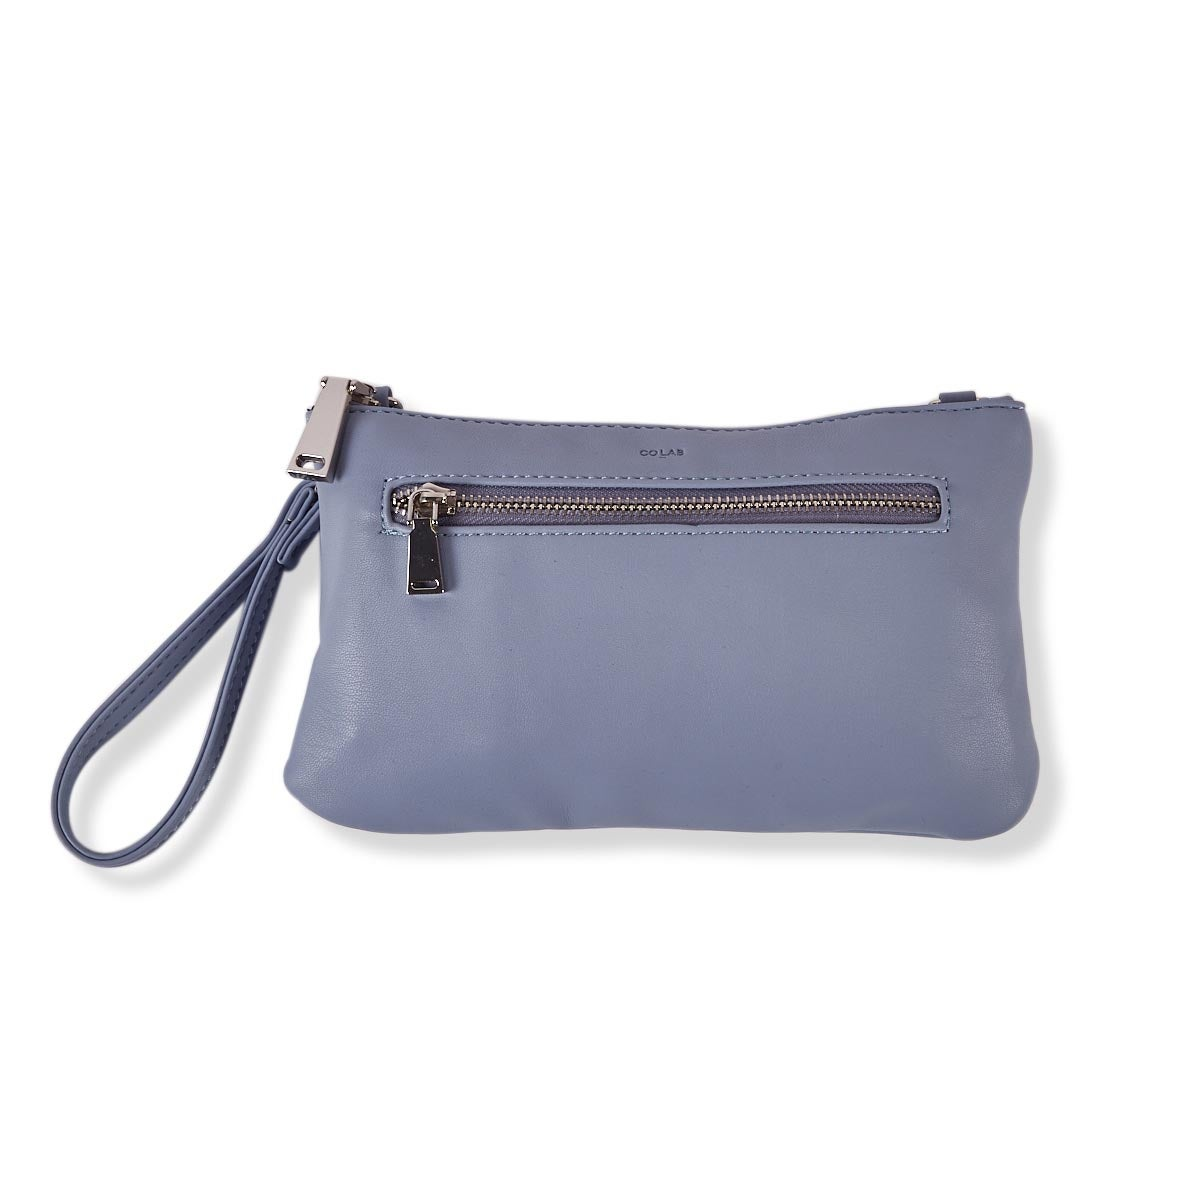 Sac band. ROCK AND CHAIN, lilas, femmes